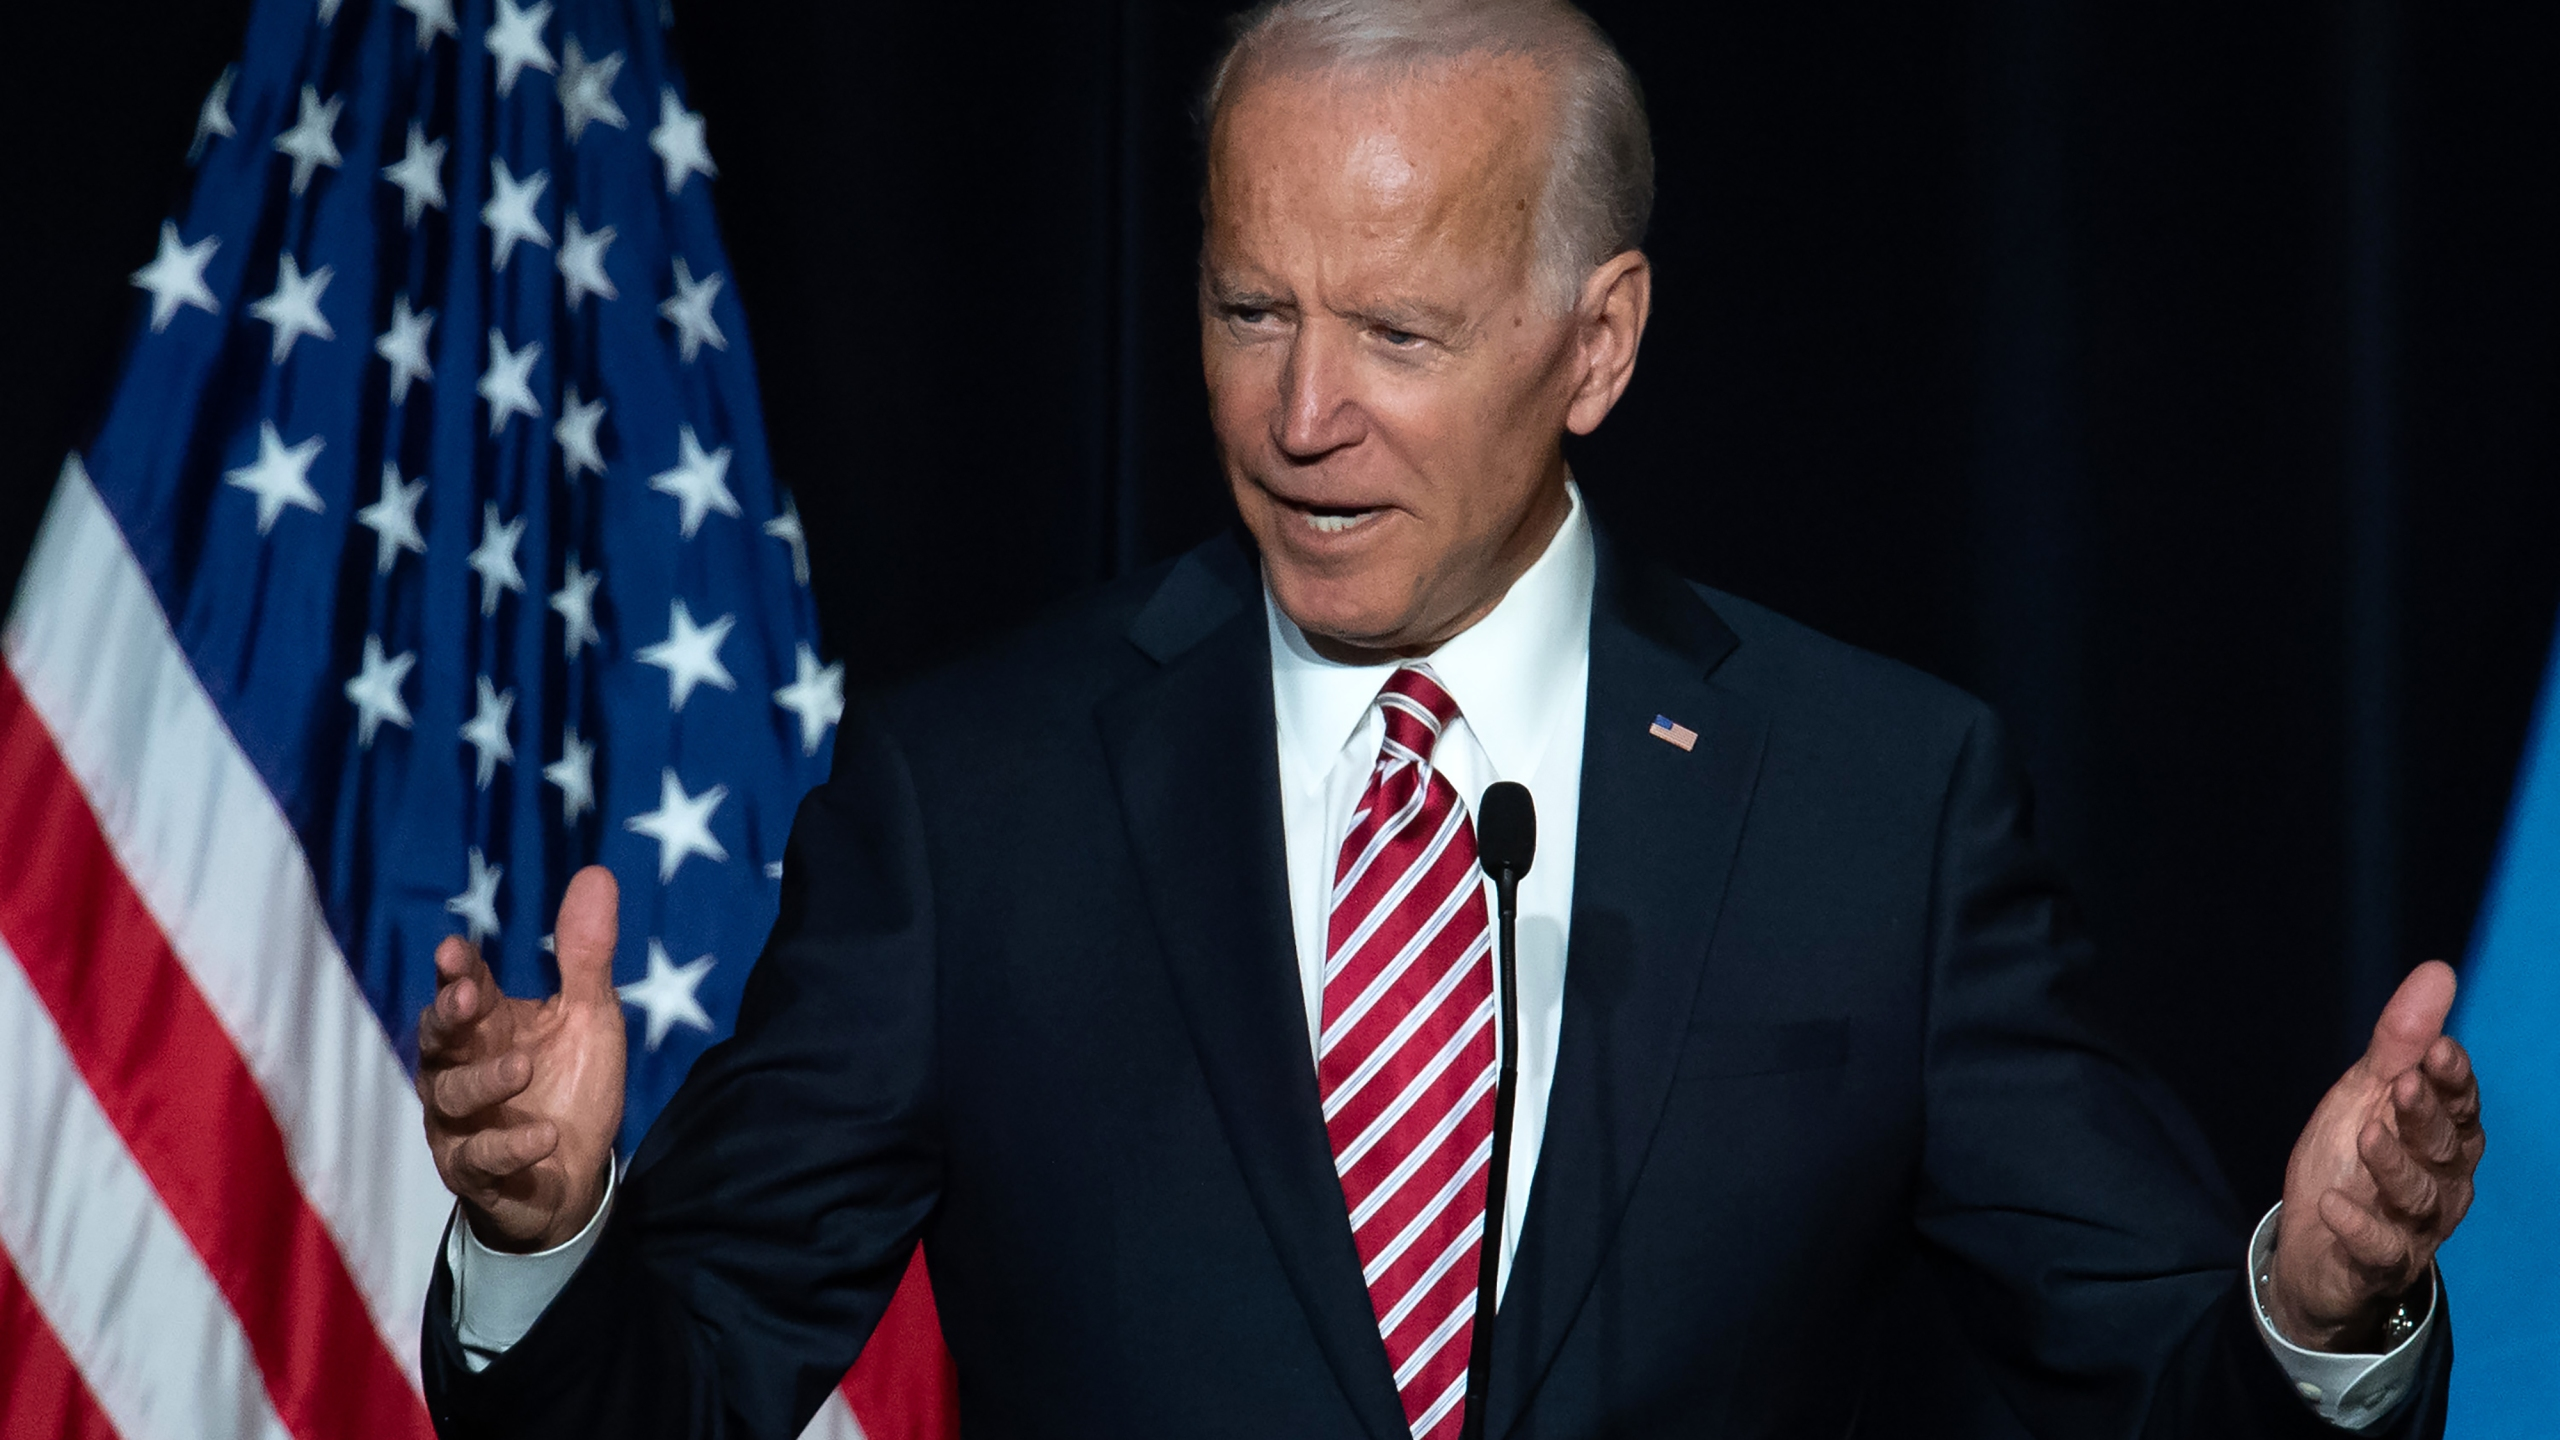 Former US Vice President Joe Biden speaks during the First State Democratic Dinner in Dover, Delaware, on March 16, 2019. (Credit: SAUL LOEB/AFP/Getty Images)